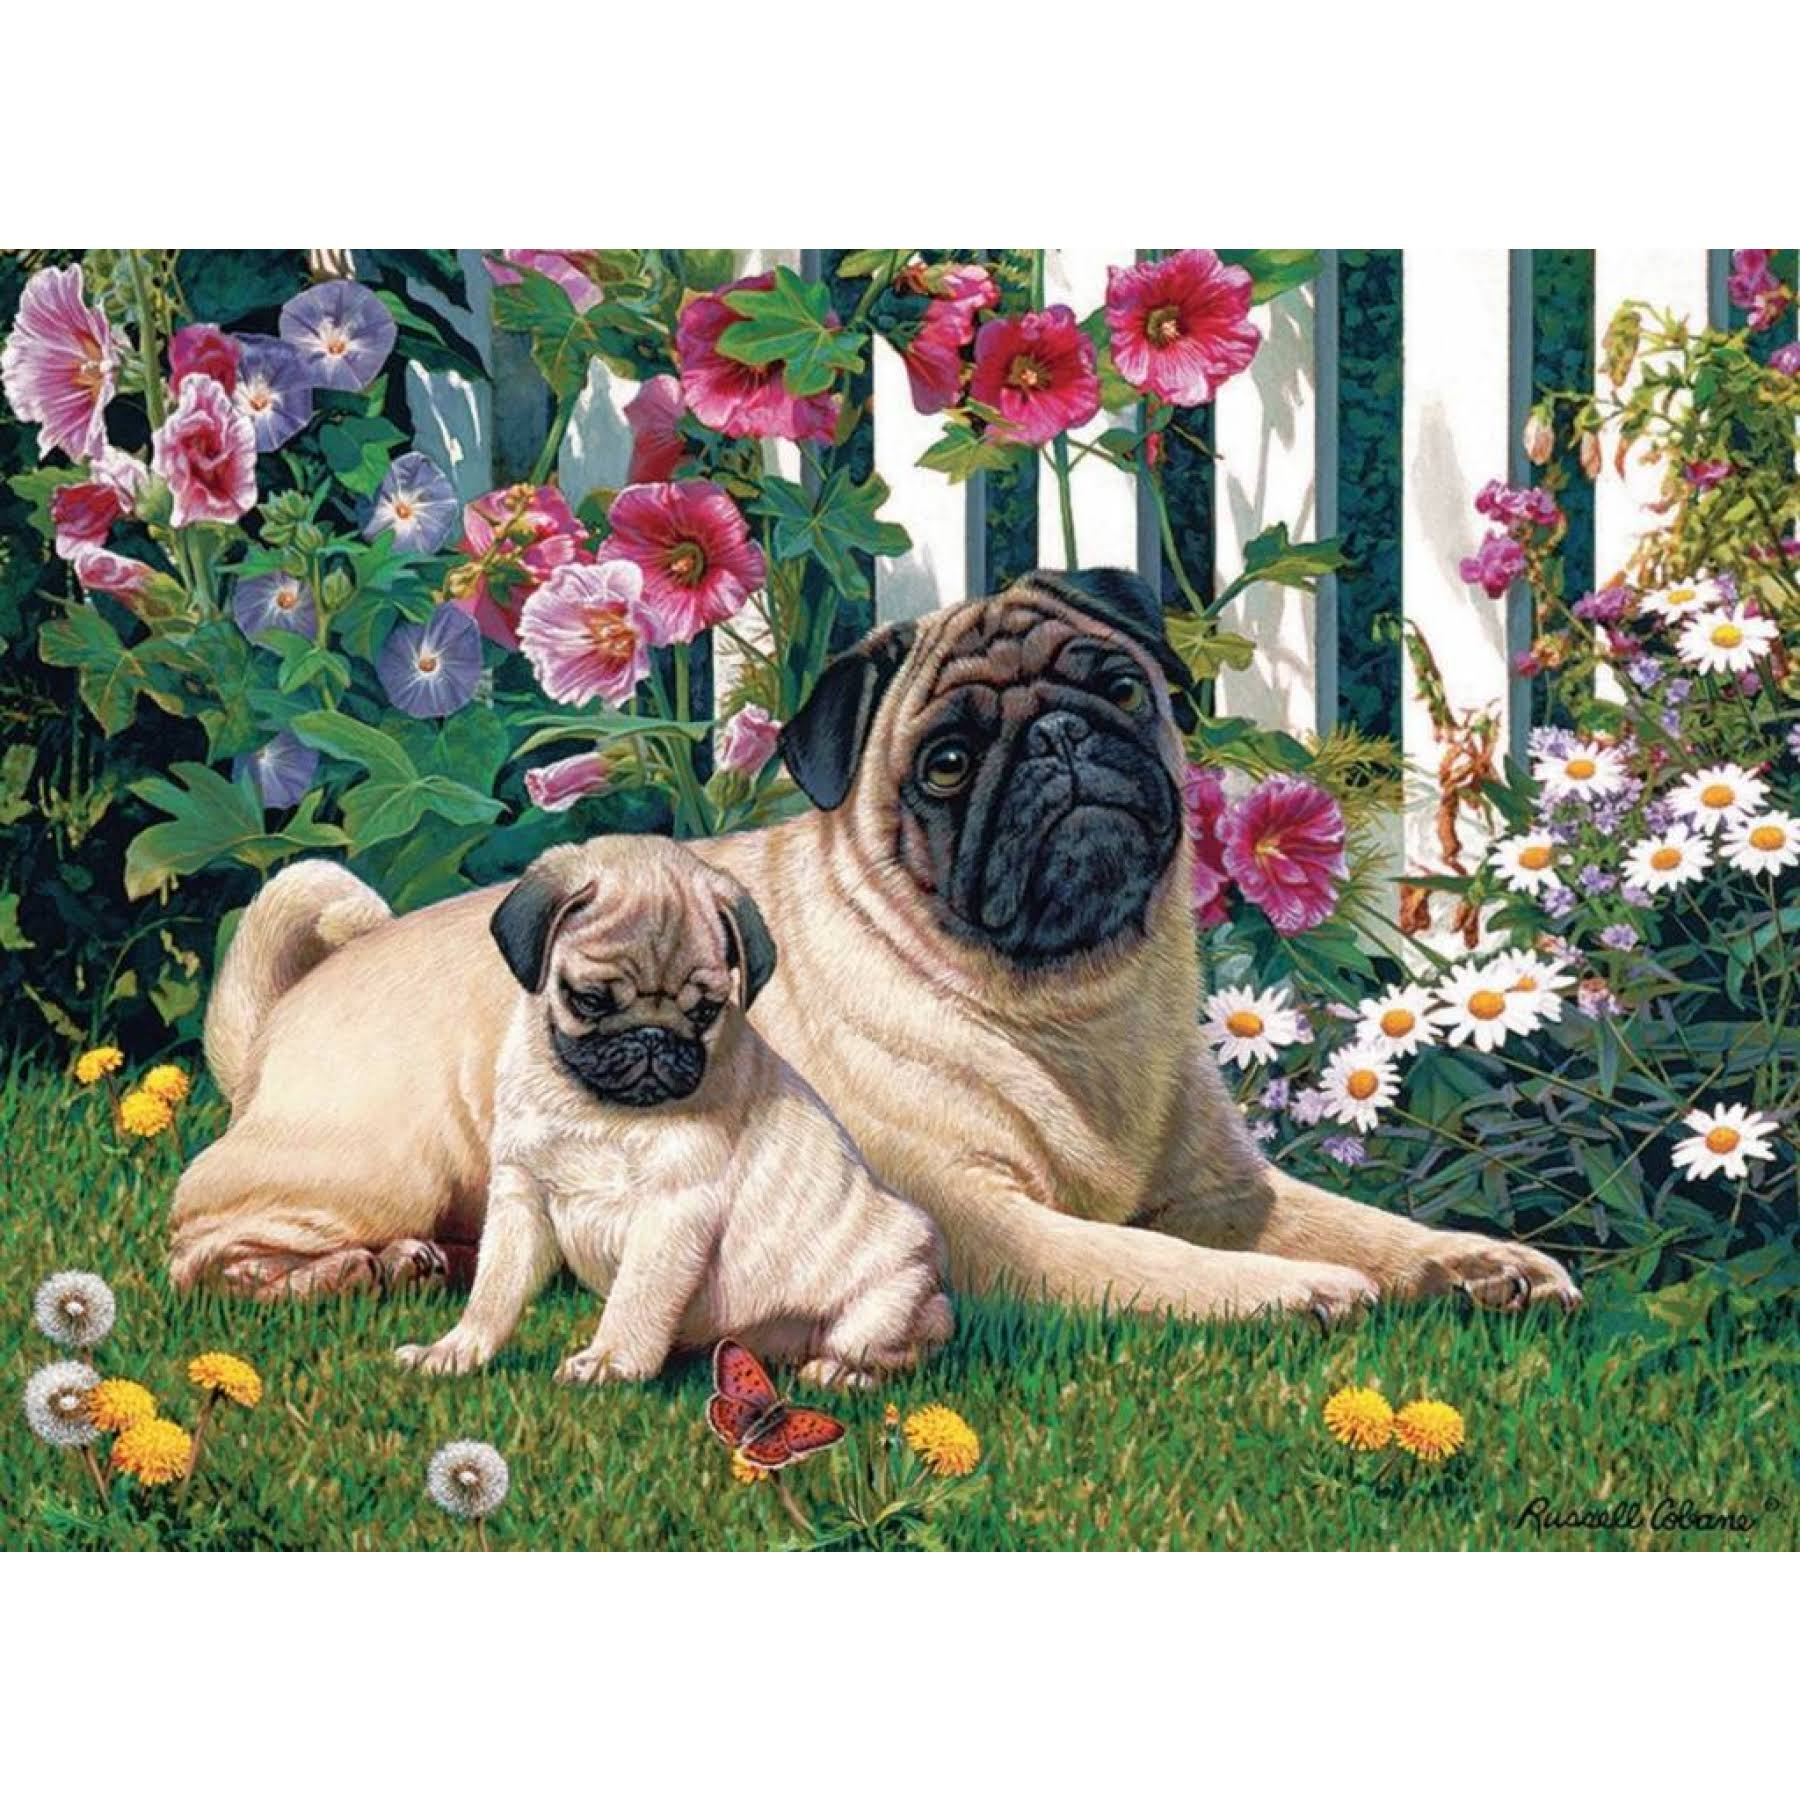 Cobble Hill Pug Family 1000 Piece Puzzle